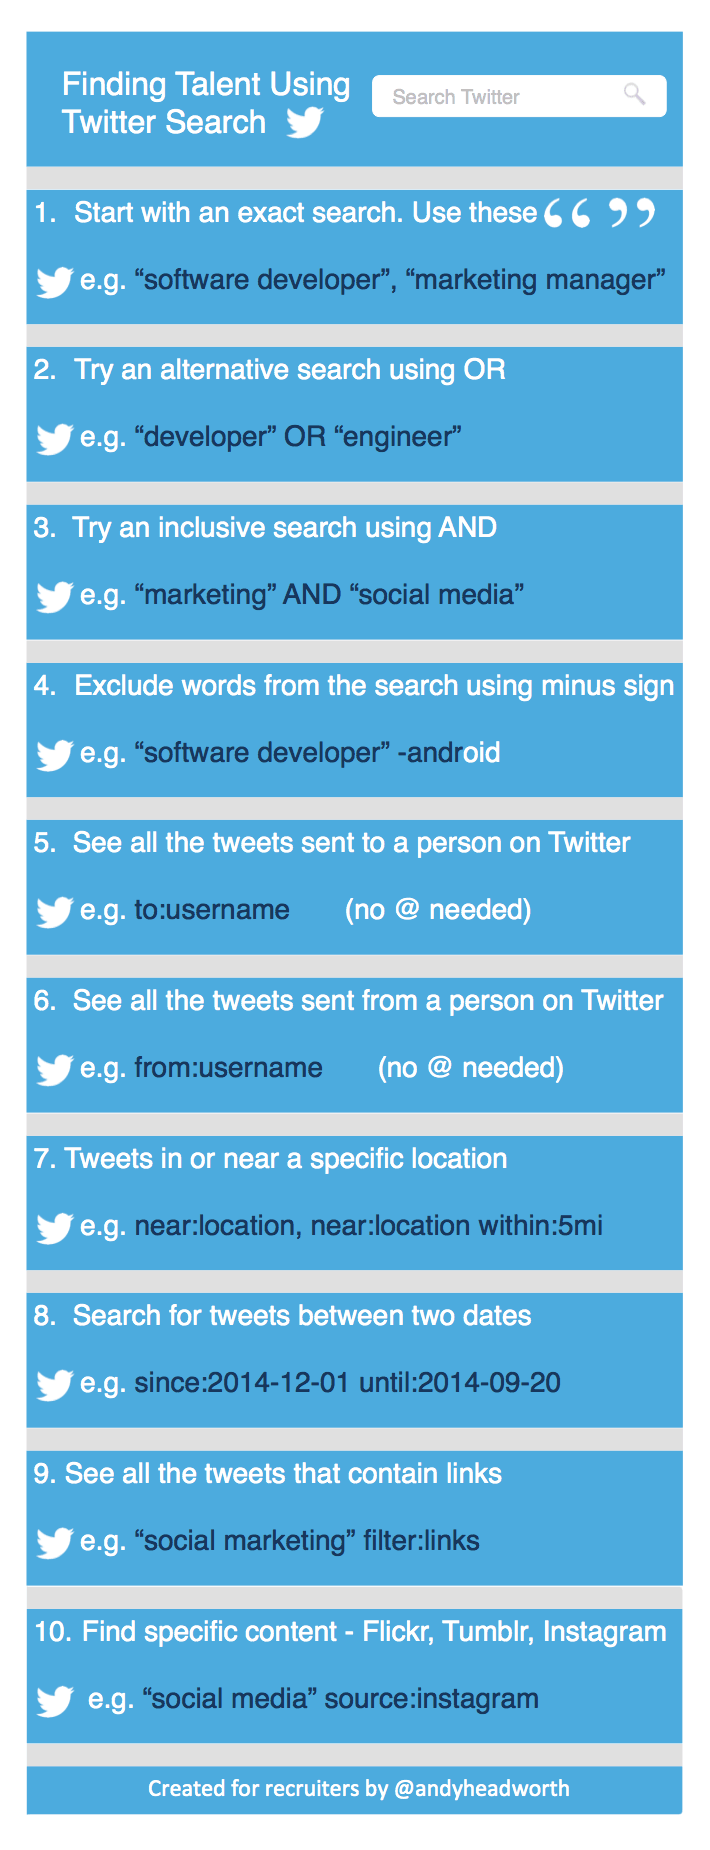 Finding-Talent-Using-Twitter-Search (1)